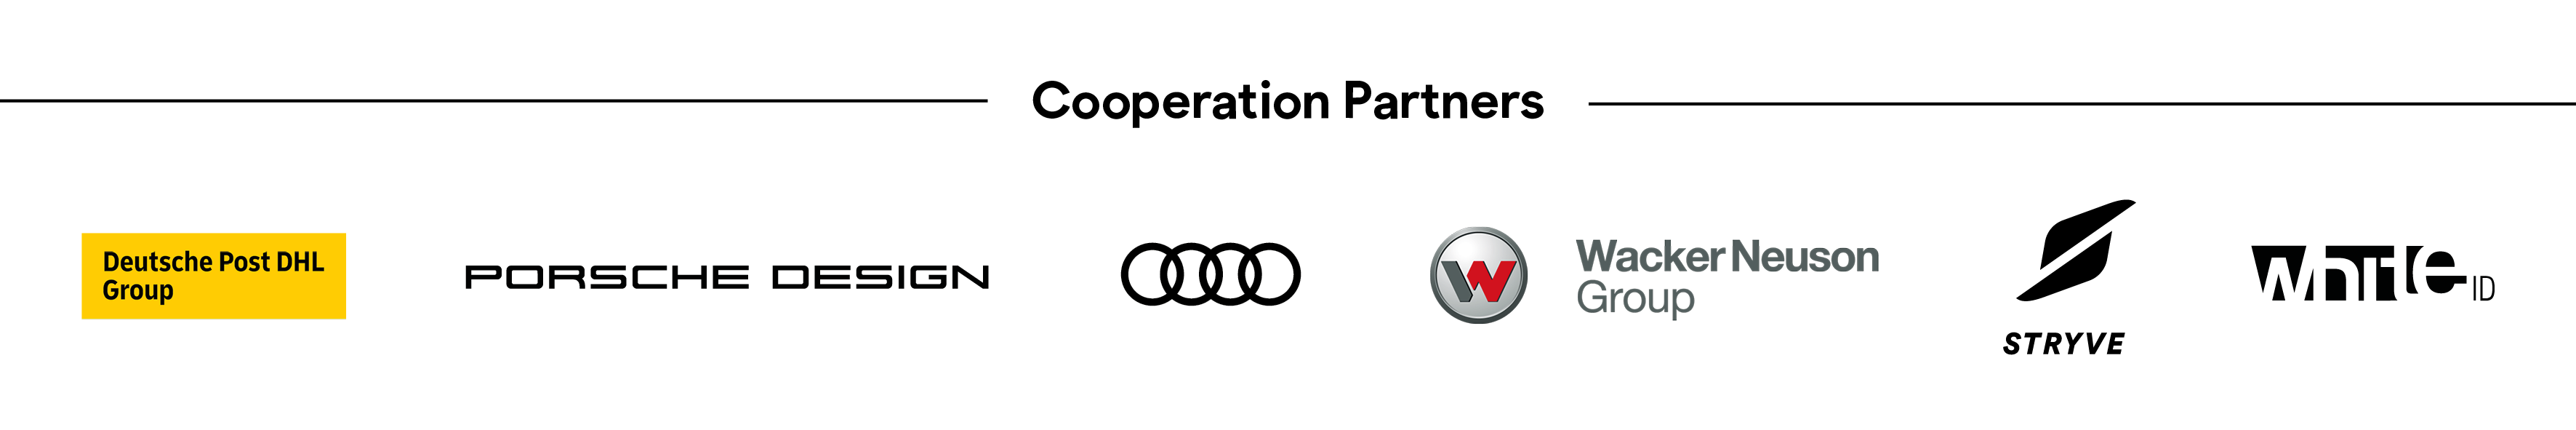 Cooperation-Partners-2